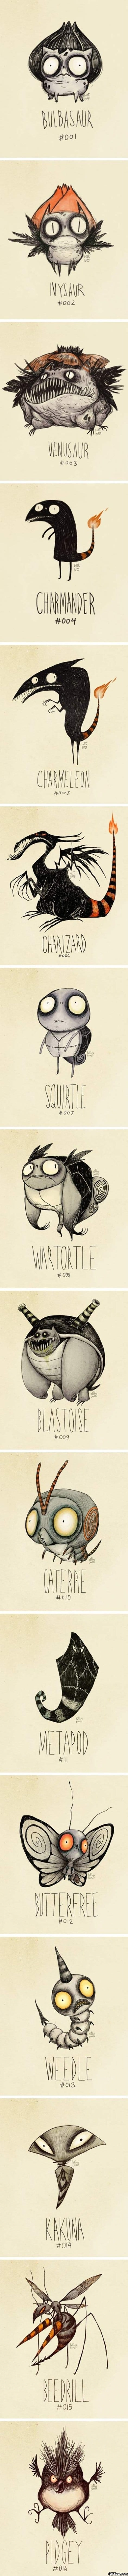 Pokemon as Drawn by Tim Burton